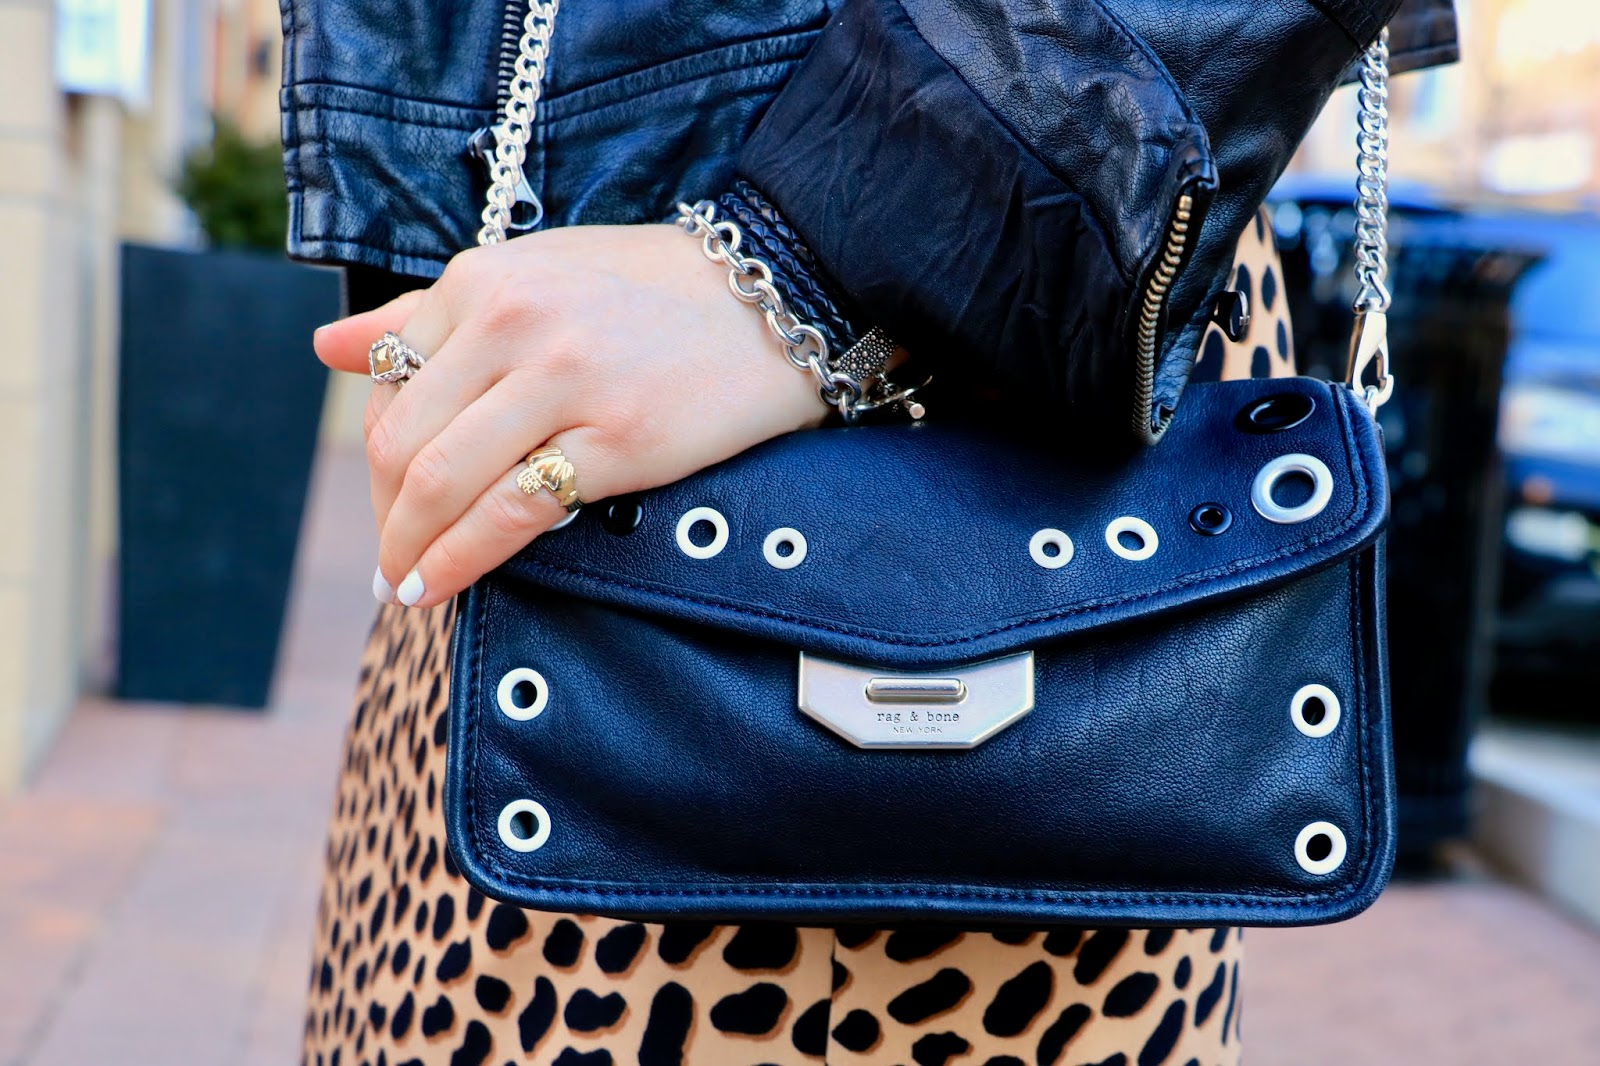 Nyc fashion blogger Kathleen Harper's rag and bone crossbody purse